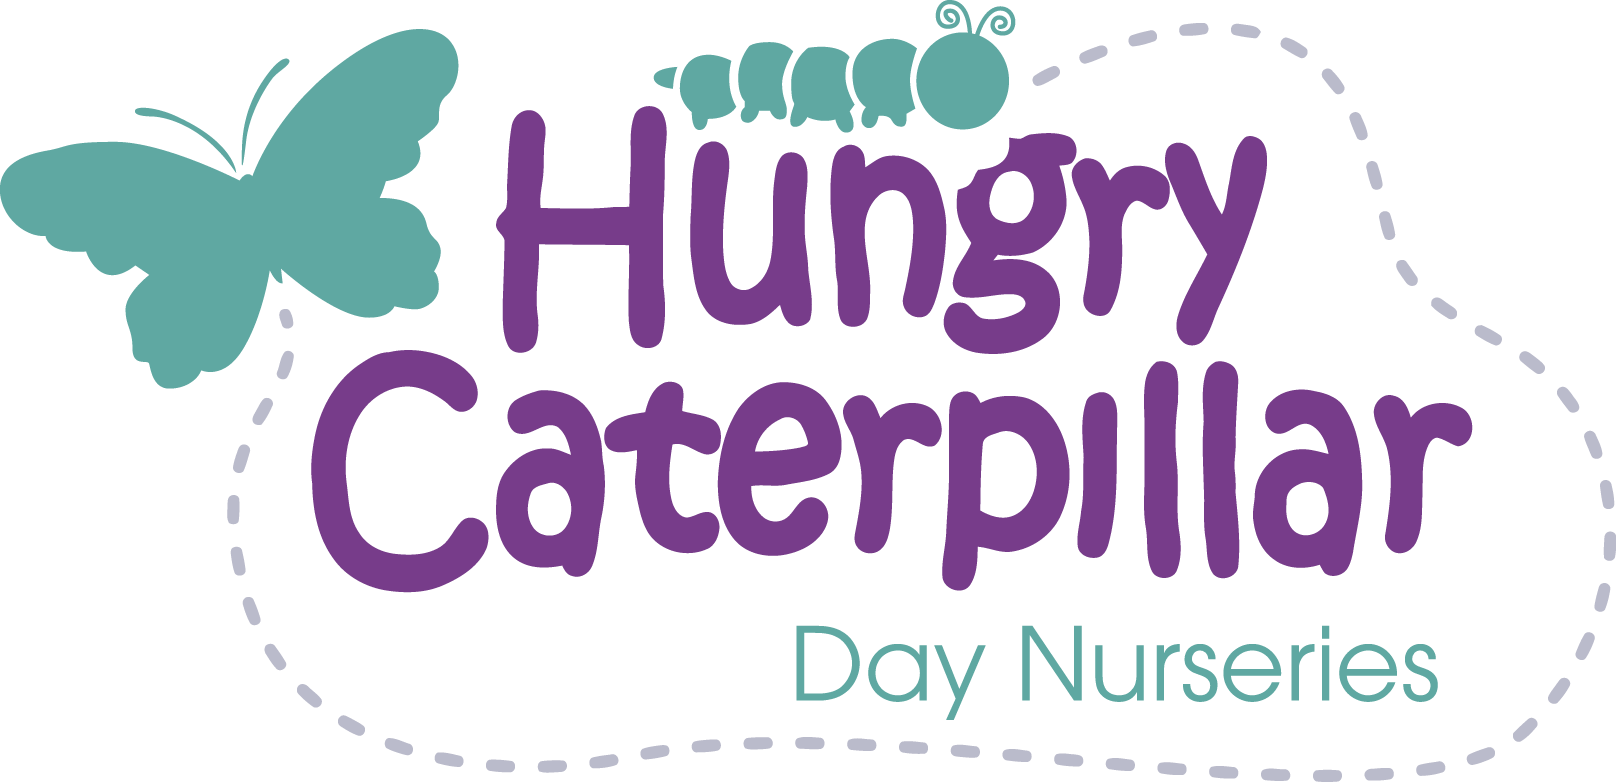 Hungry Caterpillar Day Nurseries - Academy Garden's Open Day